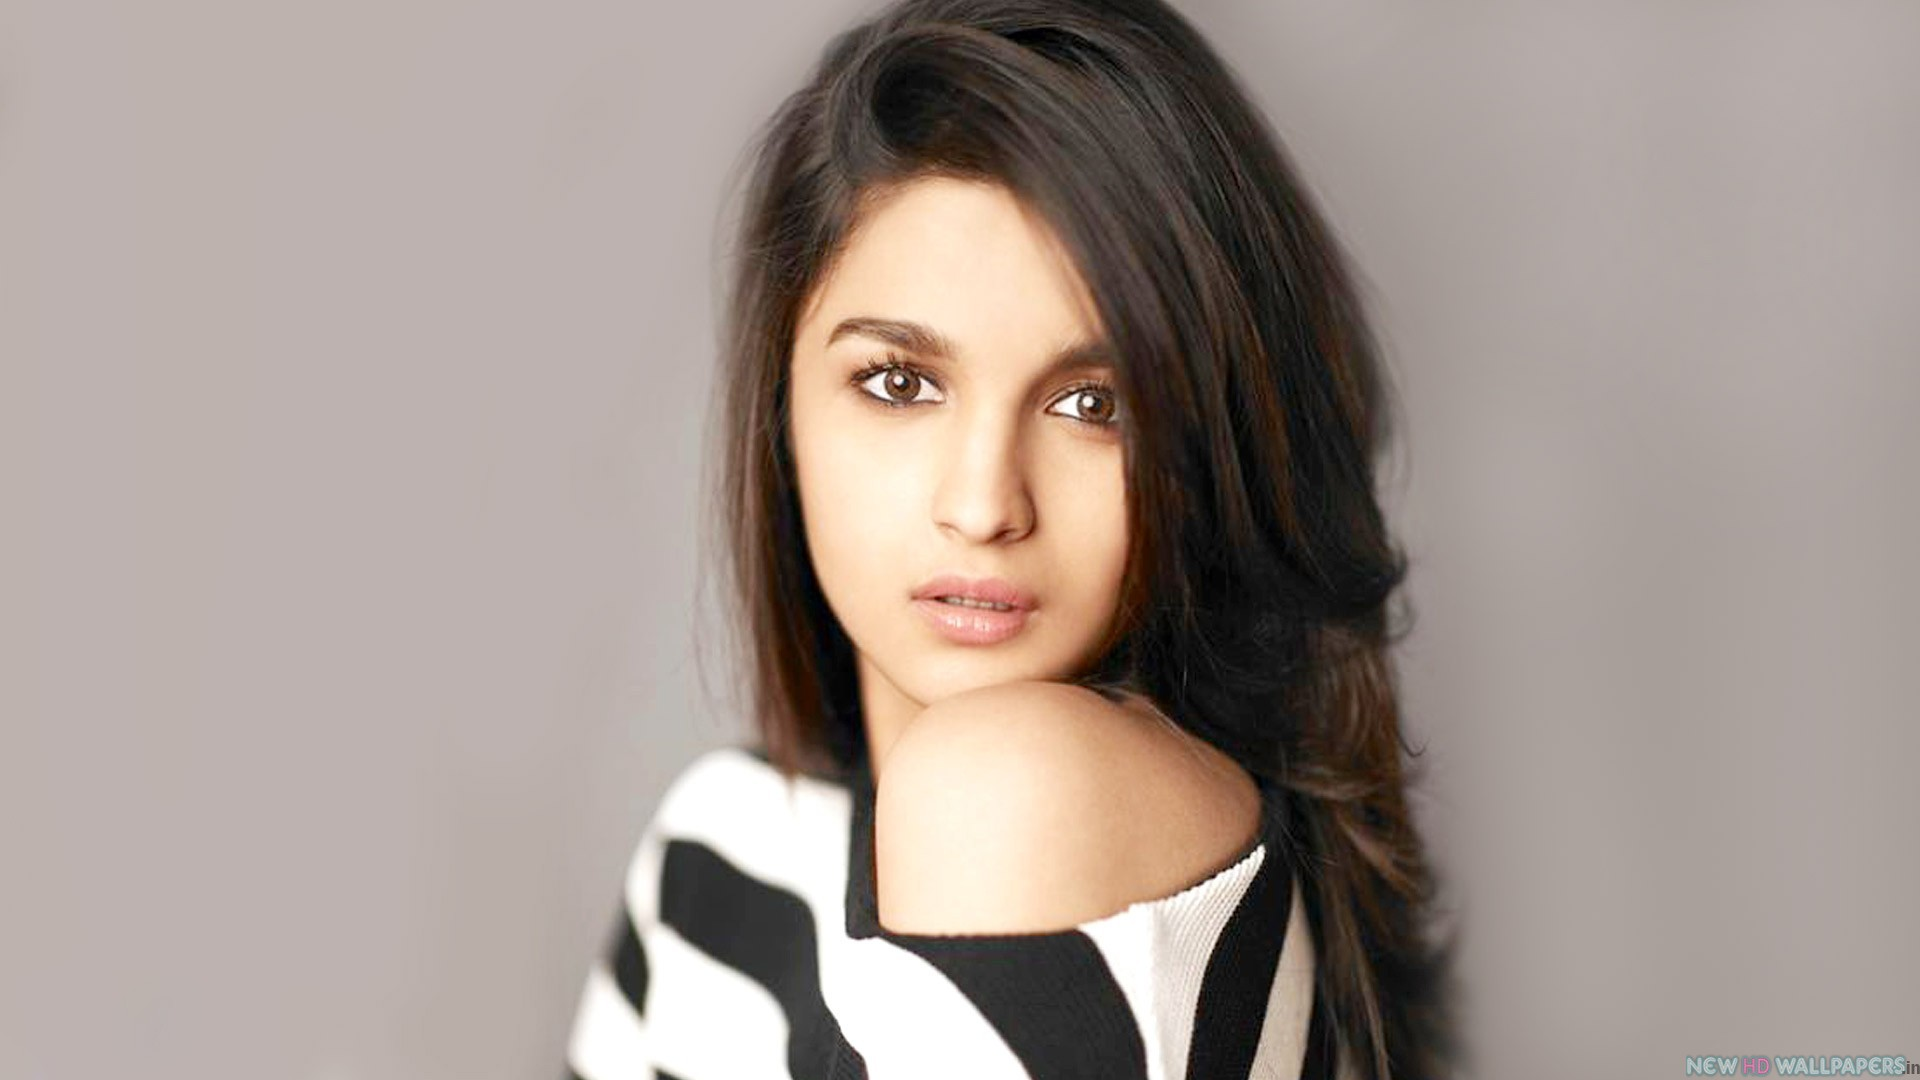 Alia Bhatt is too young to work with Khans?